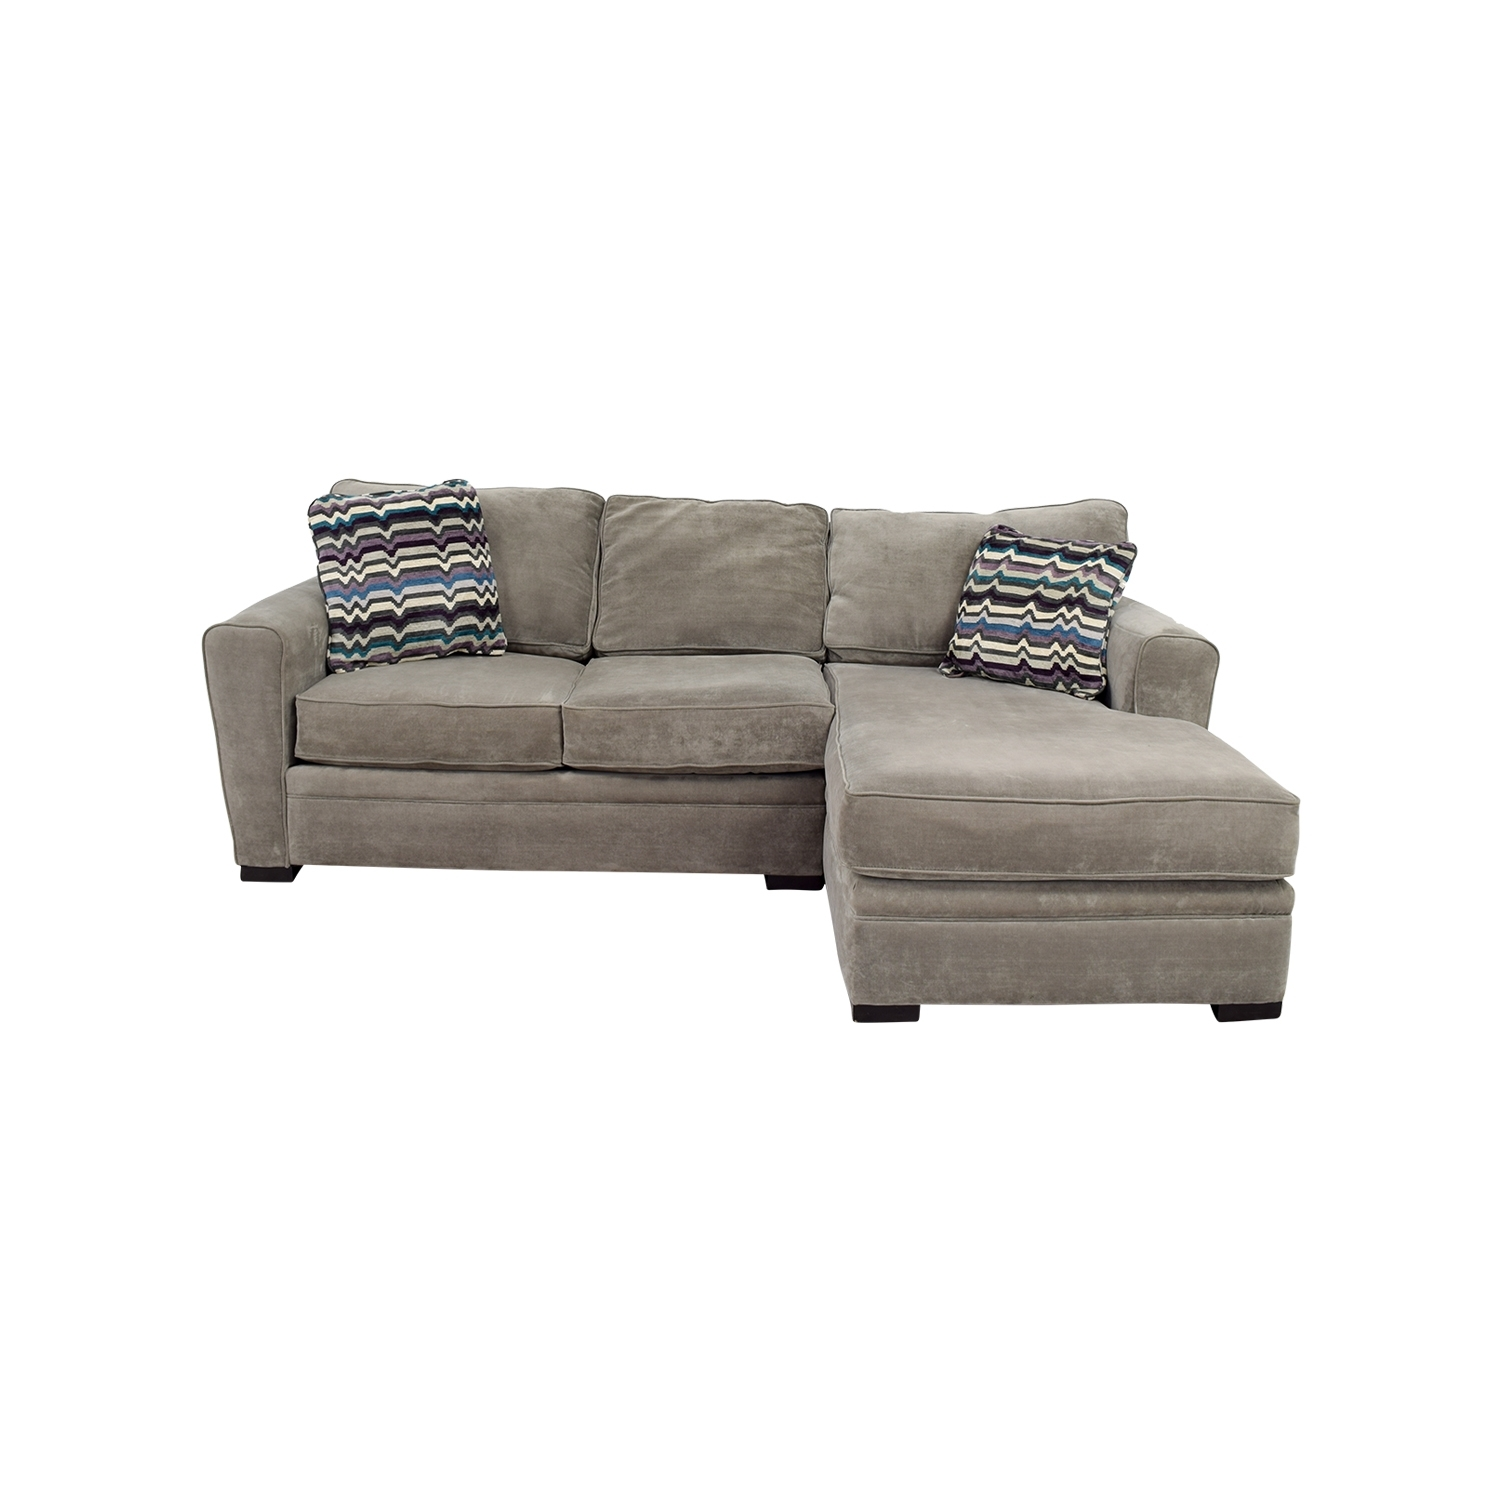 54% Off – Raymour & Flanigan Raymour & Flanigan Artemis Ii Intended For Sectional Sofas At Raymour And Flanigan (View 7 of 10)